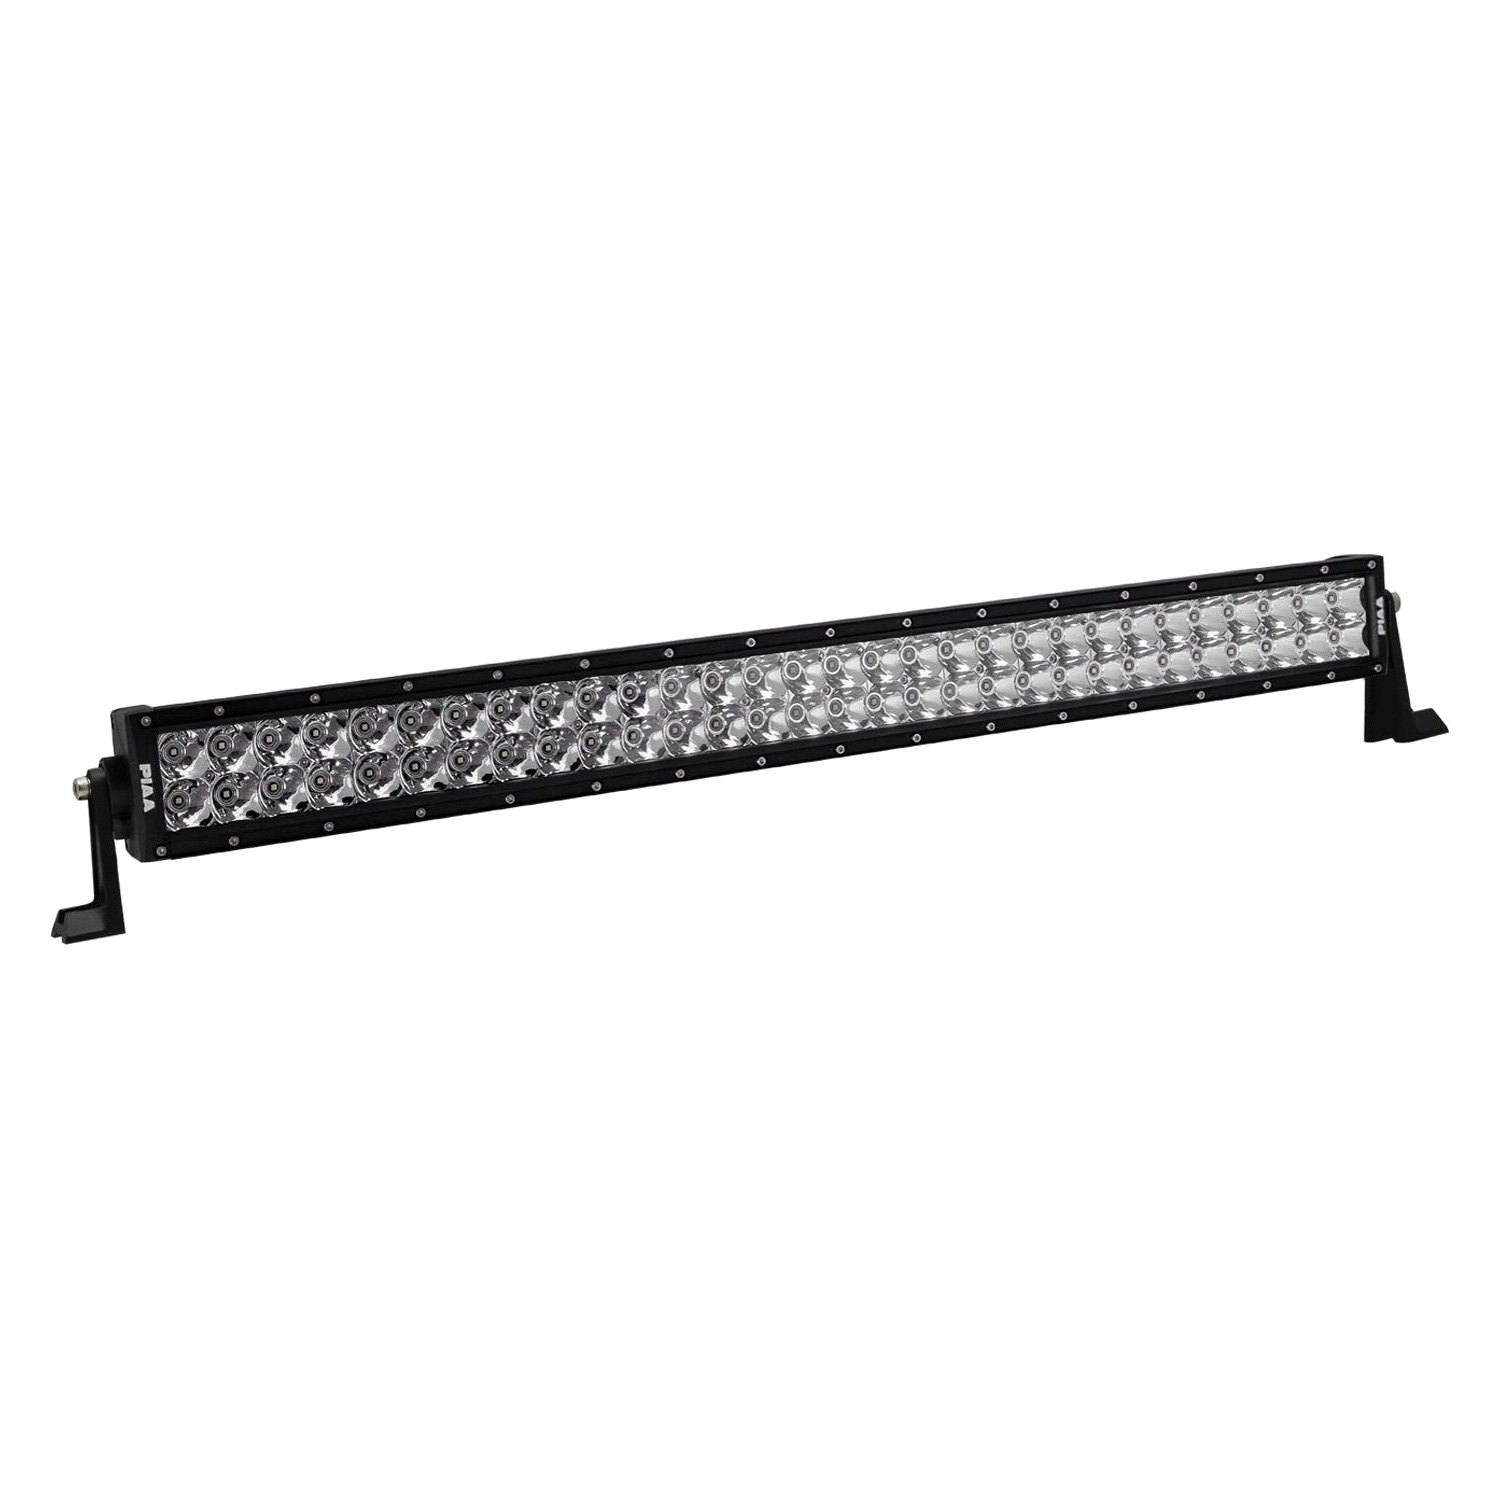 Piaa 174 26 06630 Quad Series 30 Quot 180w Dual Row Spot Beam